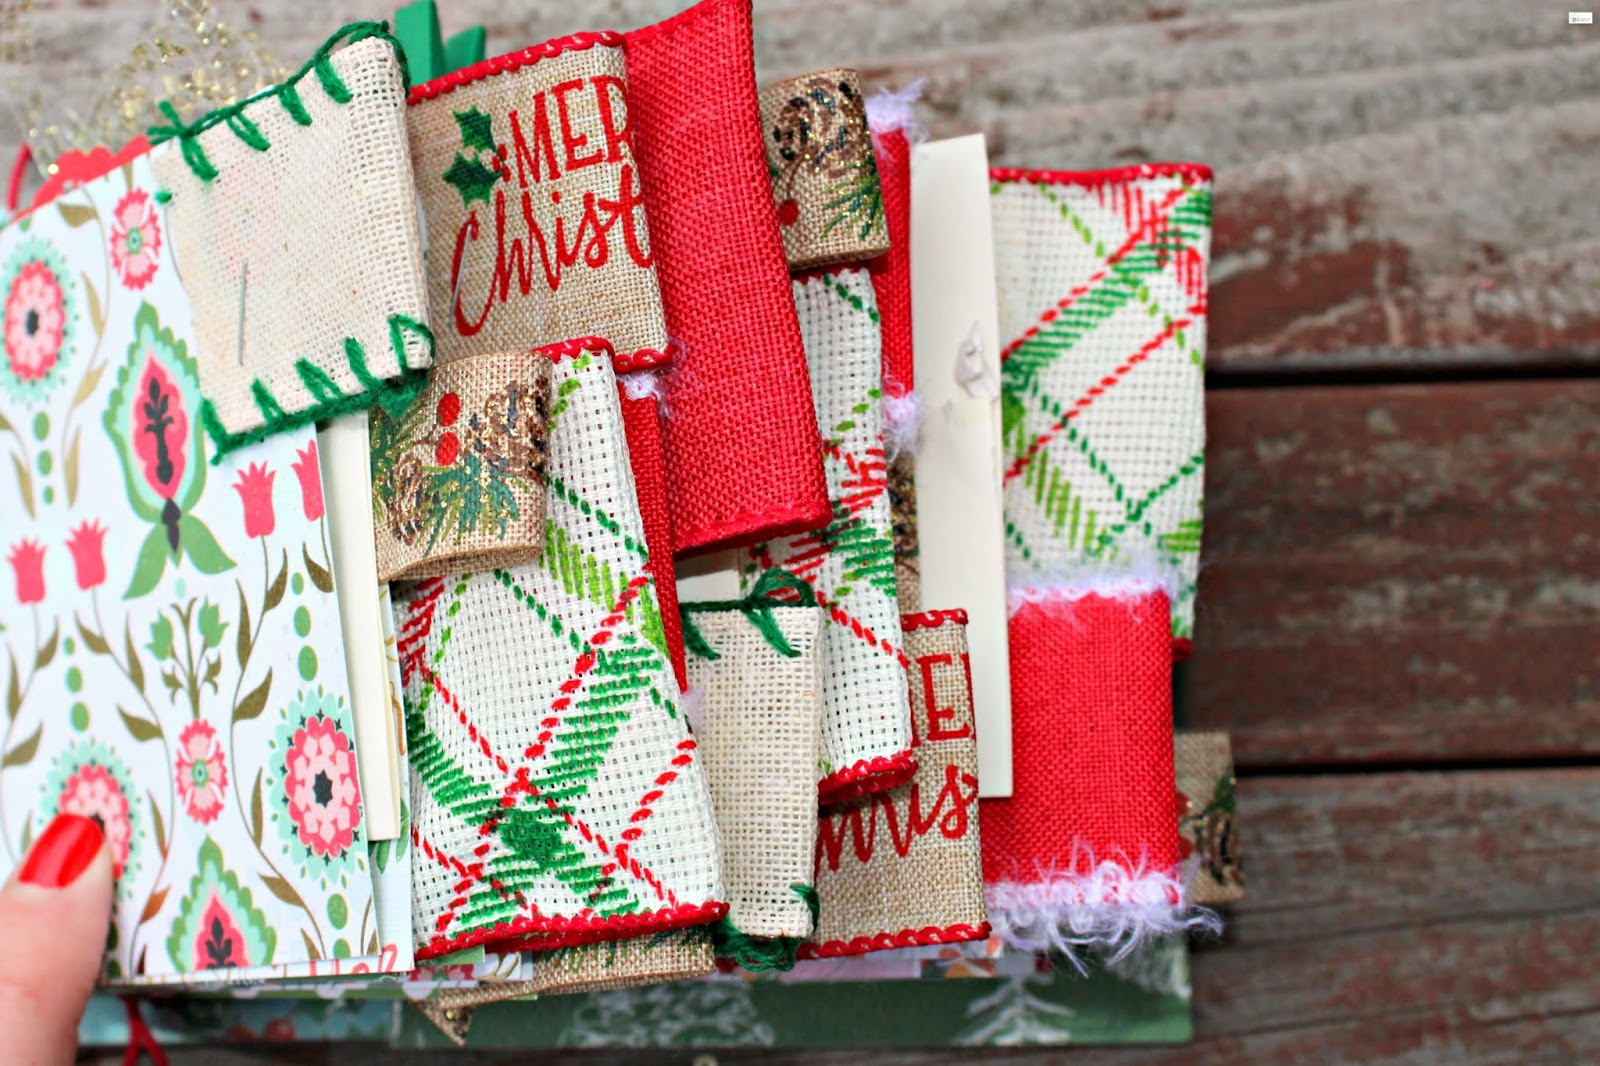 Caravan Sonnet Blog - December Caravan Etsy Shop